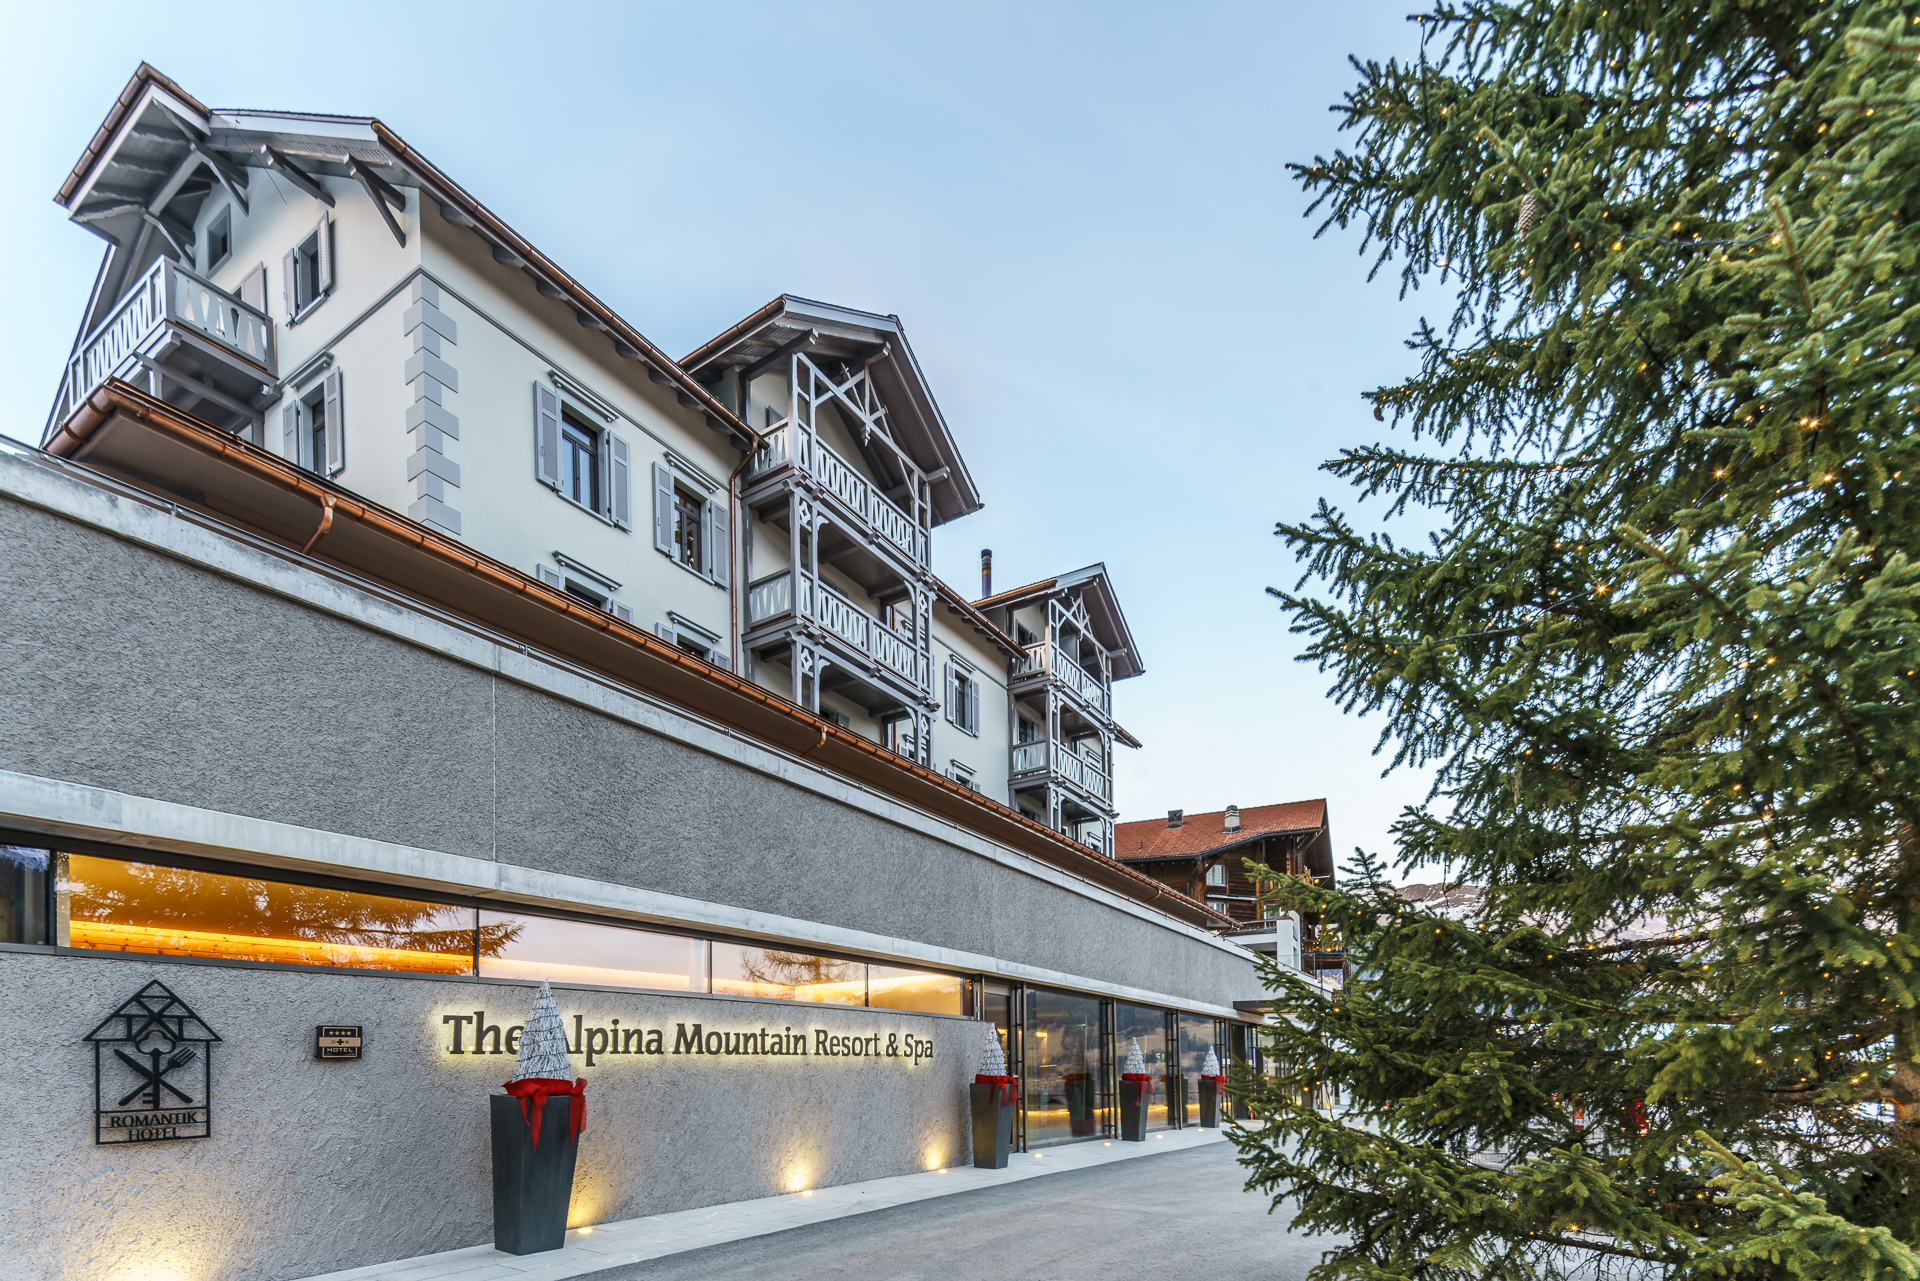 Tschiertschen The Alpina Mountain Resort and Spa